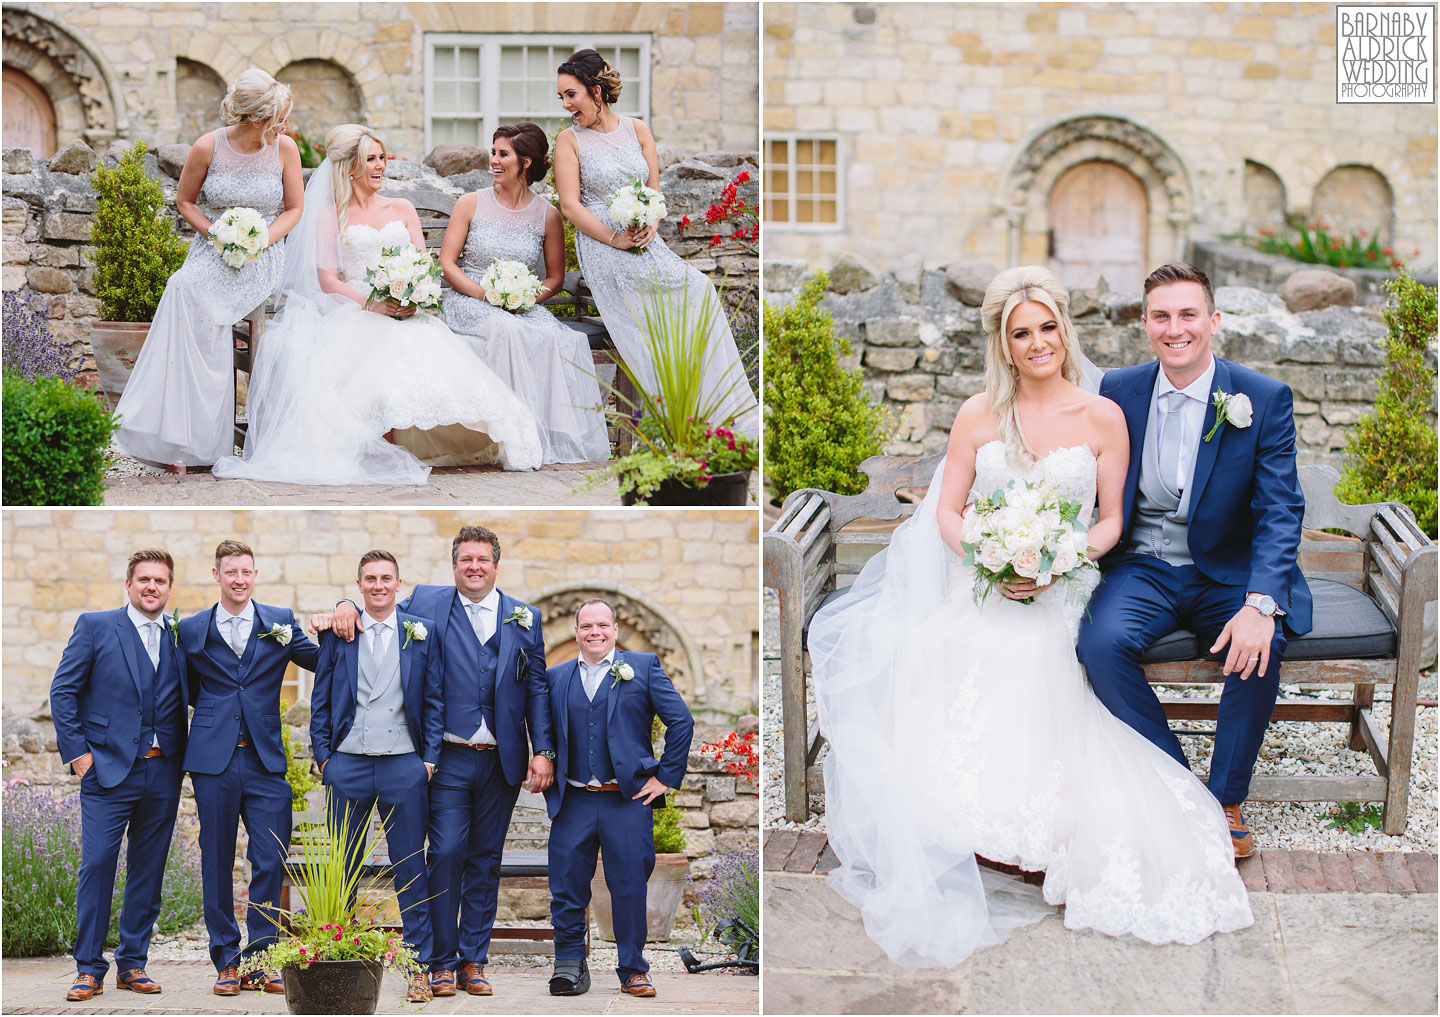 Bridesmaids groomsman photos at Priory Cottages Wetherby